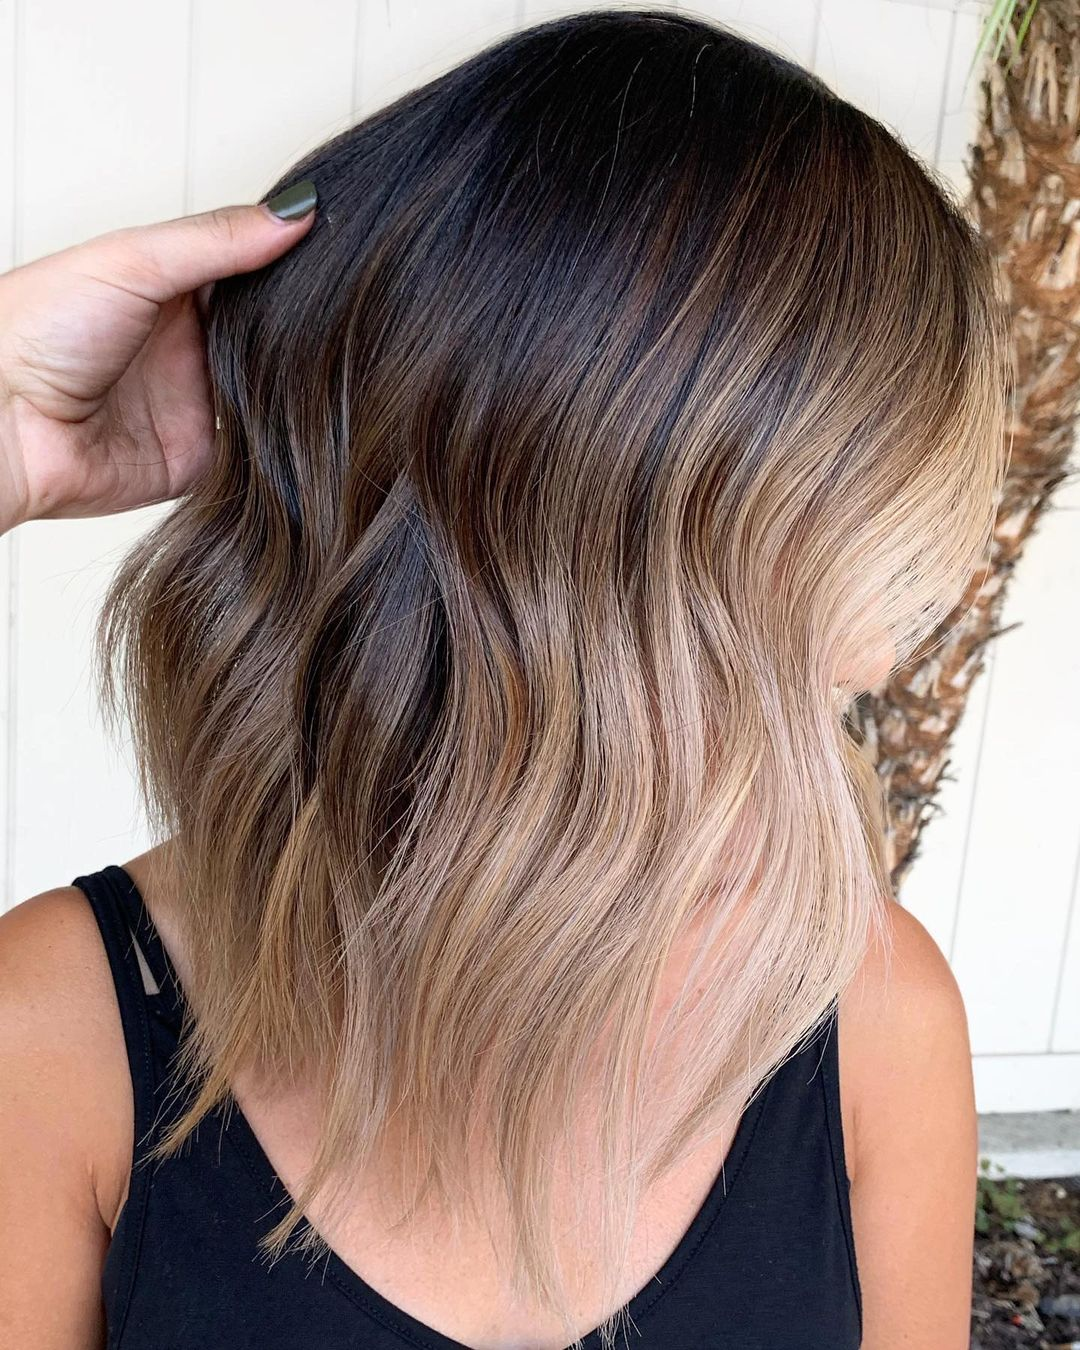 Brown Hair with Blonde Balayage Pieces